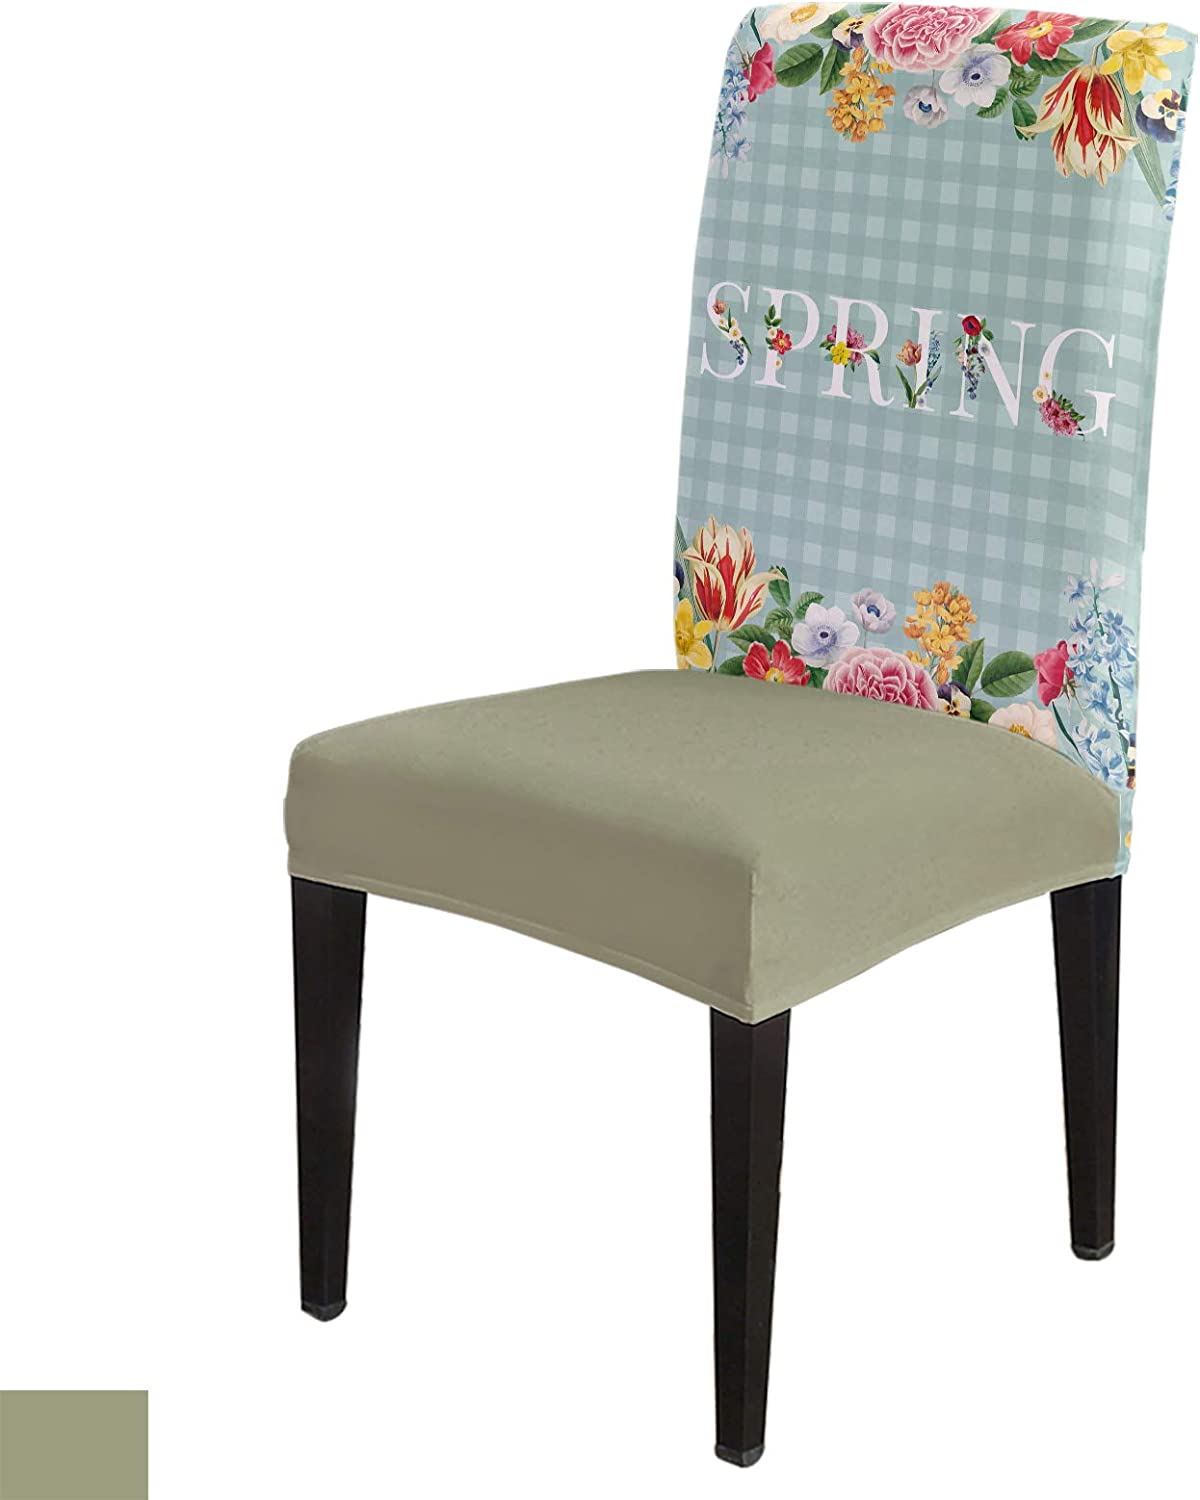 Removable Max 89% OFF Challenge the lowest price of Japan ☆ Washable Chair Covers for Party Dining Wedding Office